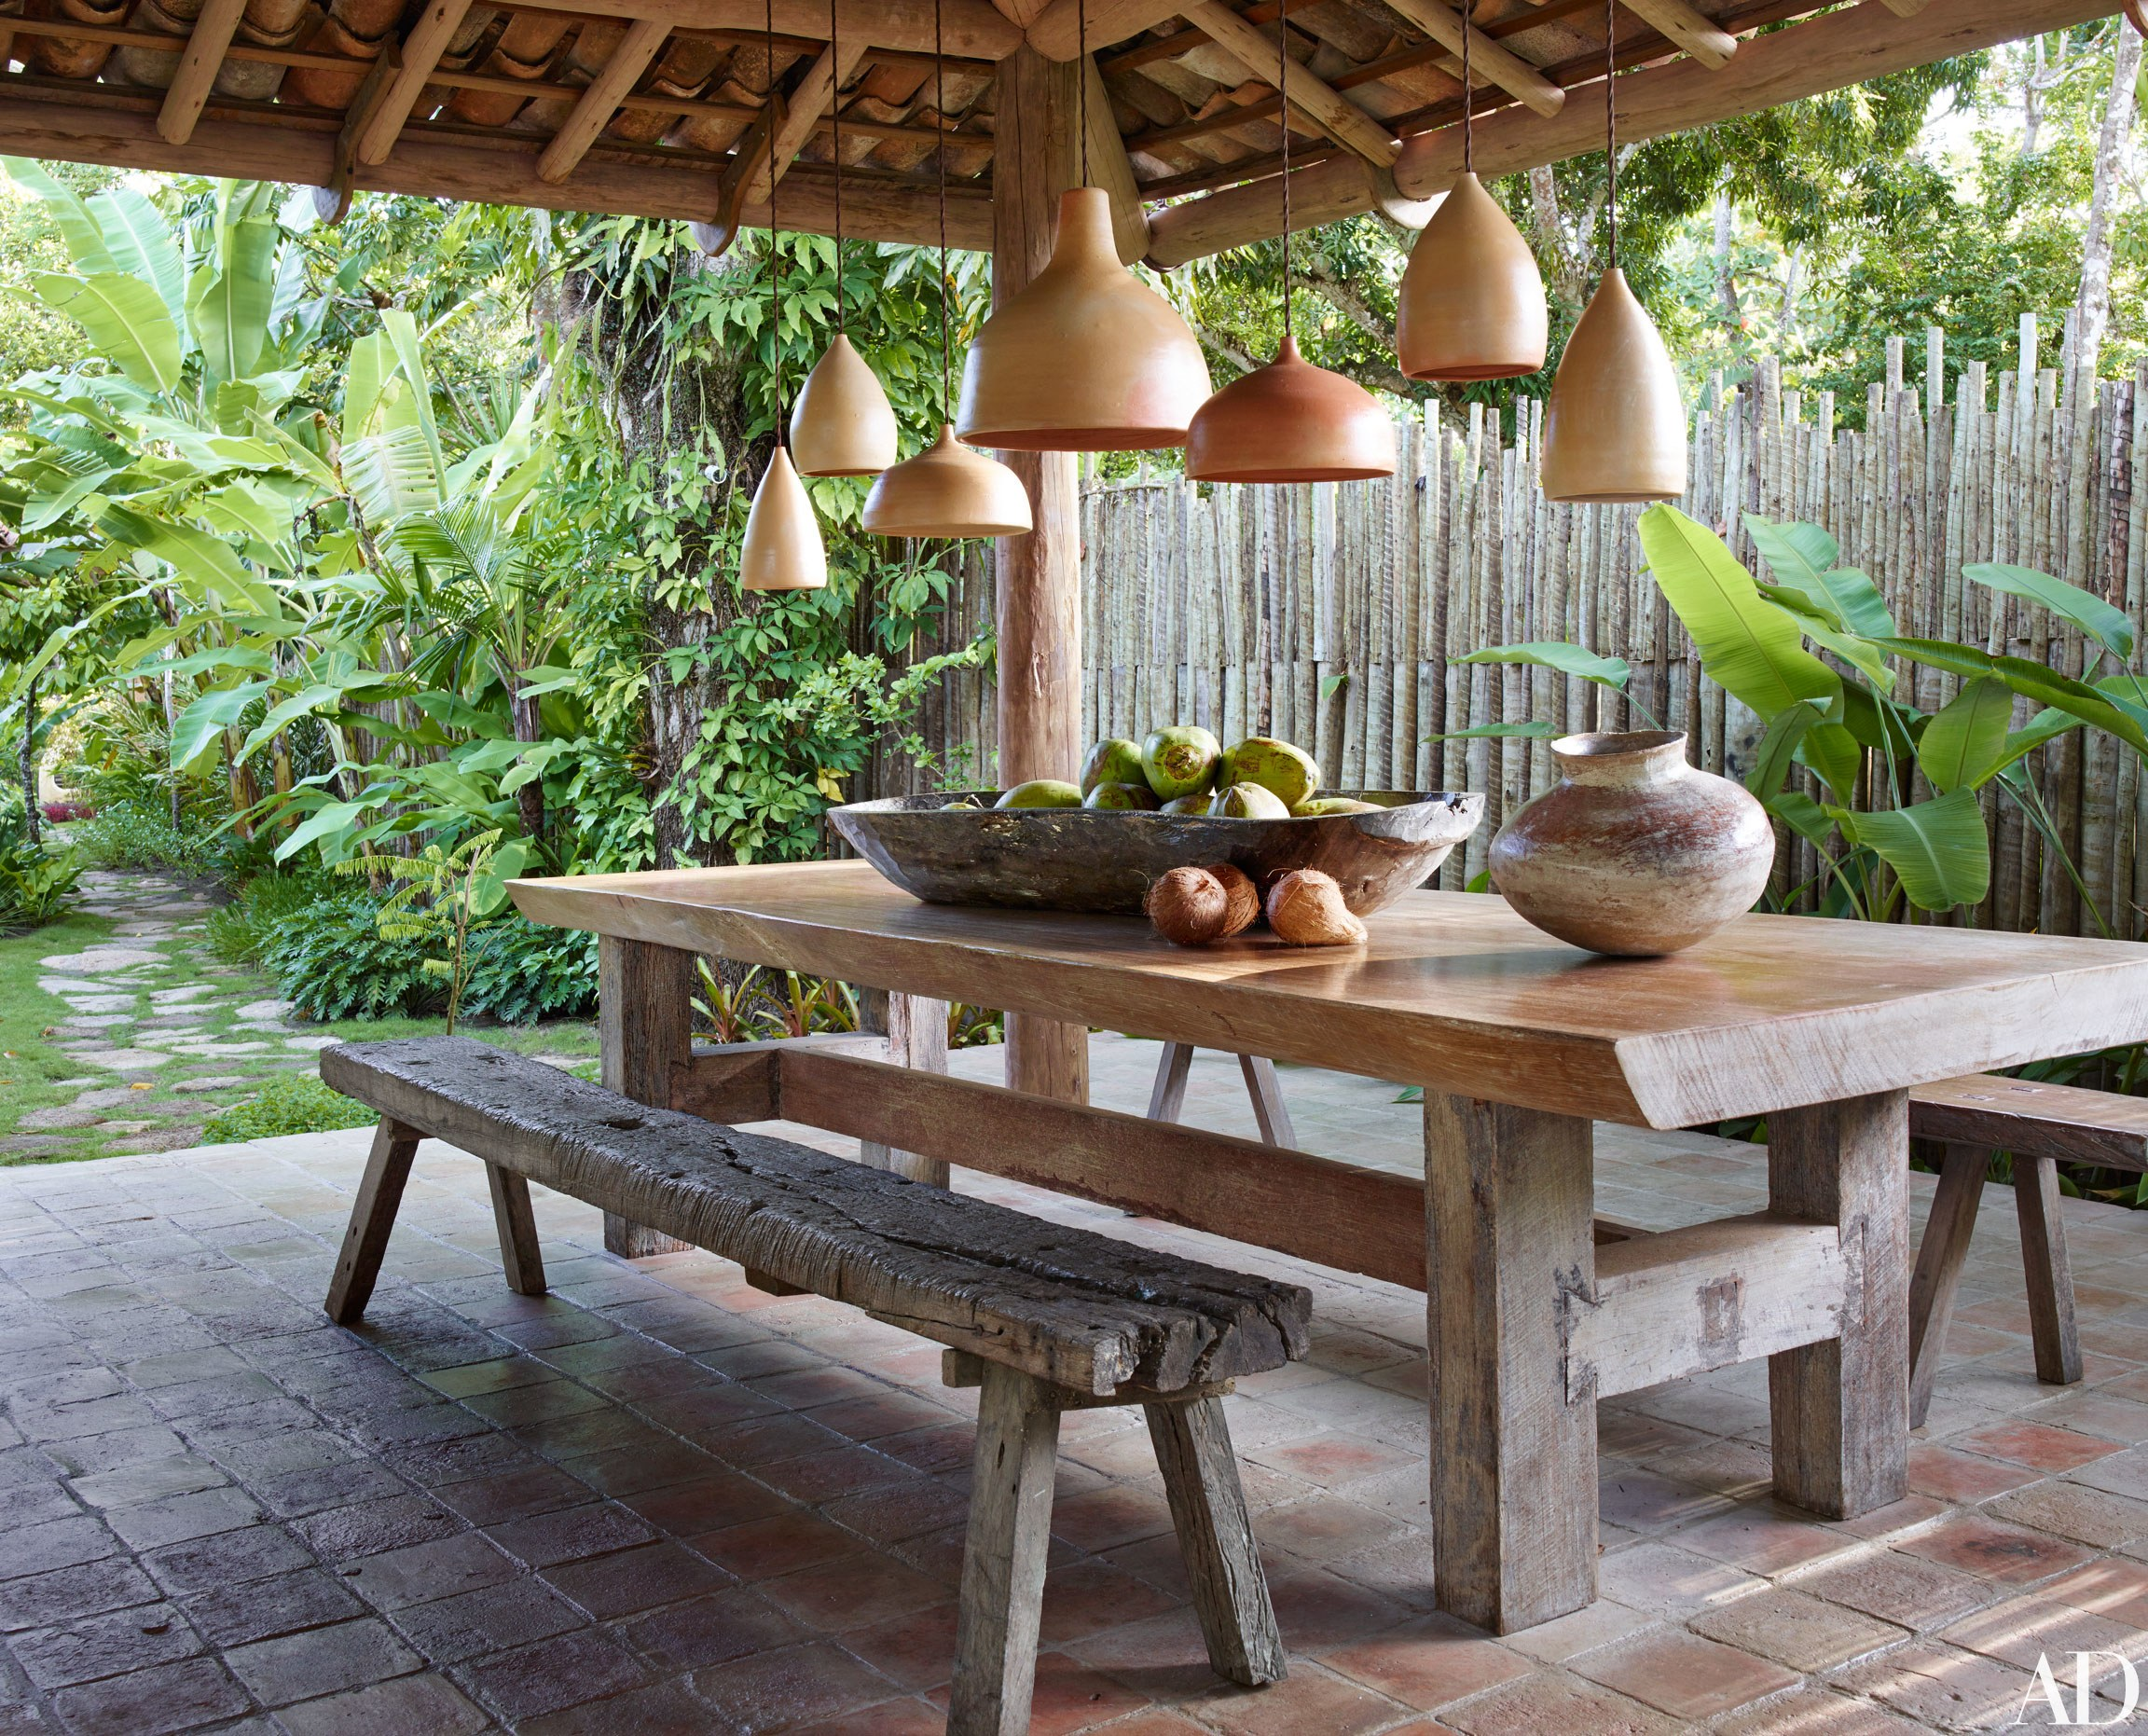 Anderson cooper s brazilian rest house is a vintage and rustic dream - Anderson Cooper S Brazilian Rest House Is A Vintage And Rustic Dream Space Preen